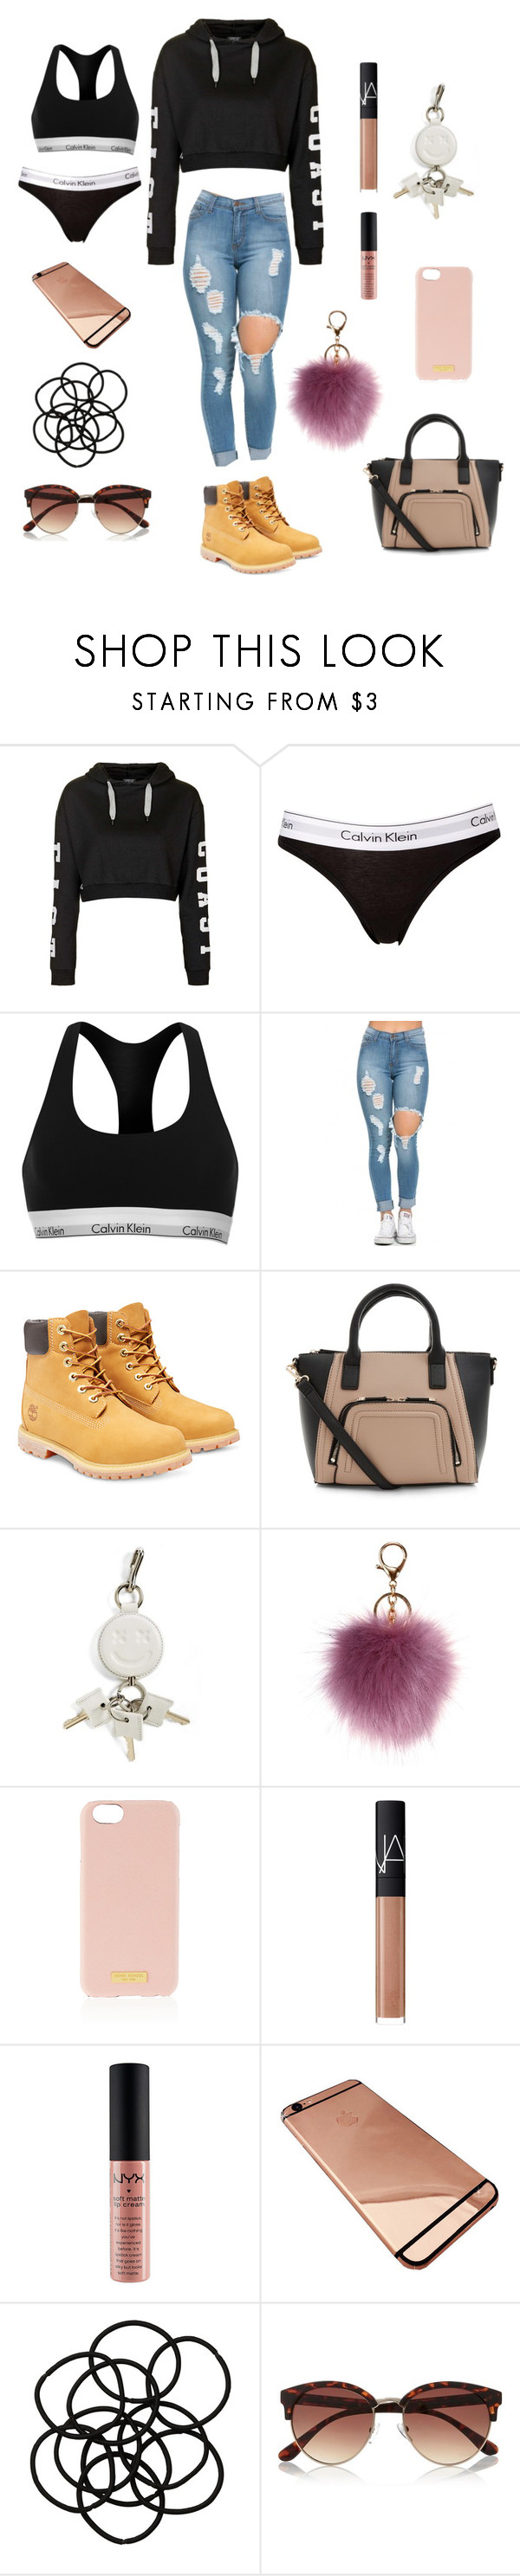 """""""Untitled #4"""" by ar-rose16 ❤ liked on Polyvore featuring Topshop, Calvin Klein, Timberland, Alexander Wang, Henri Bendel, NARS Cosmetics, NYX, Monki and River Island"""